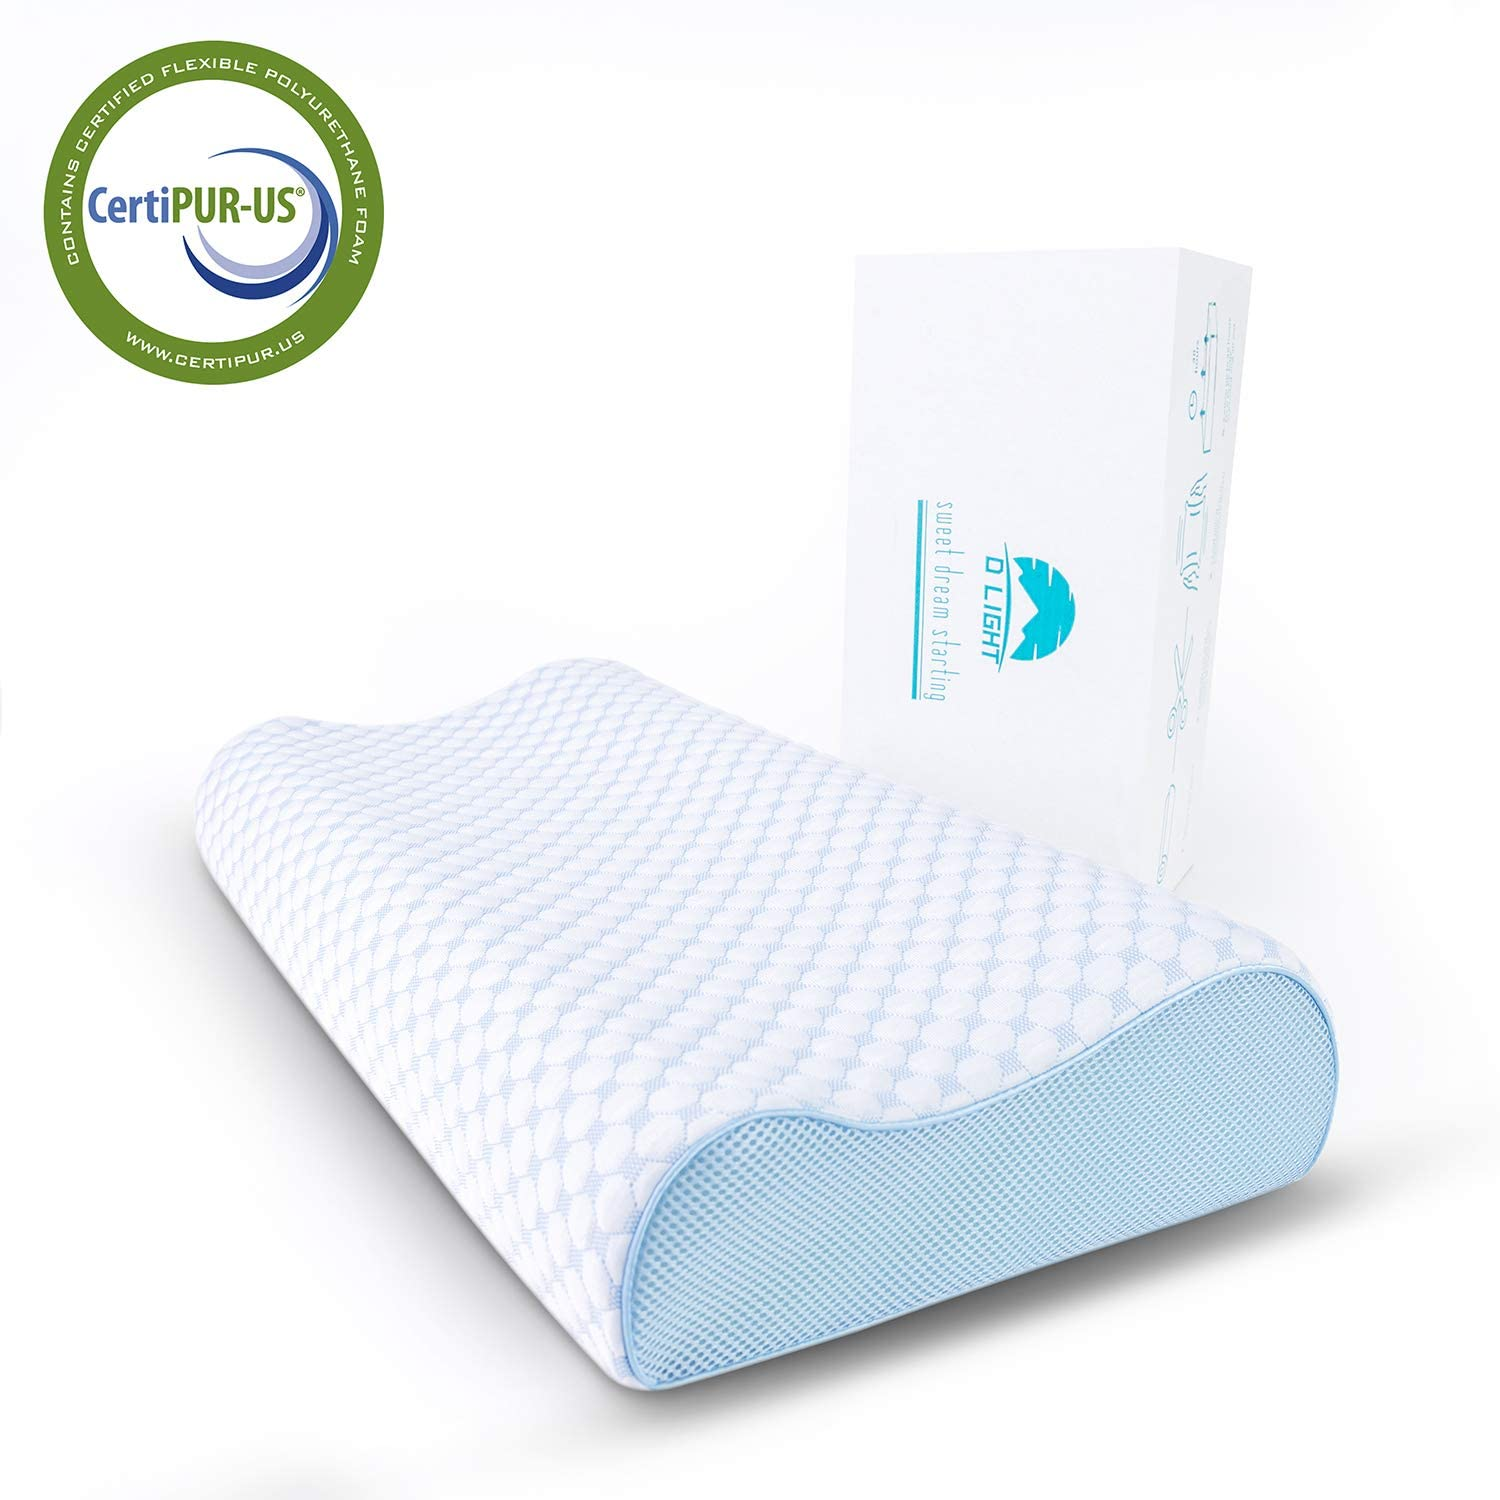 Dlight Contour Memory Foam Pillow-Ergonomic Design to Relieve Neck Pain,Sleeping Bed Pillow for All Sleeping Positions, CertiPUR-US (Soft Contour-4.7 Inch): Home & Kitchen